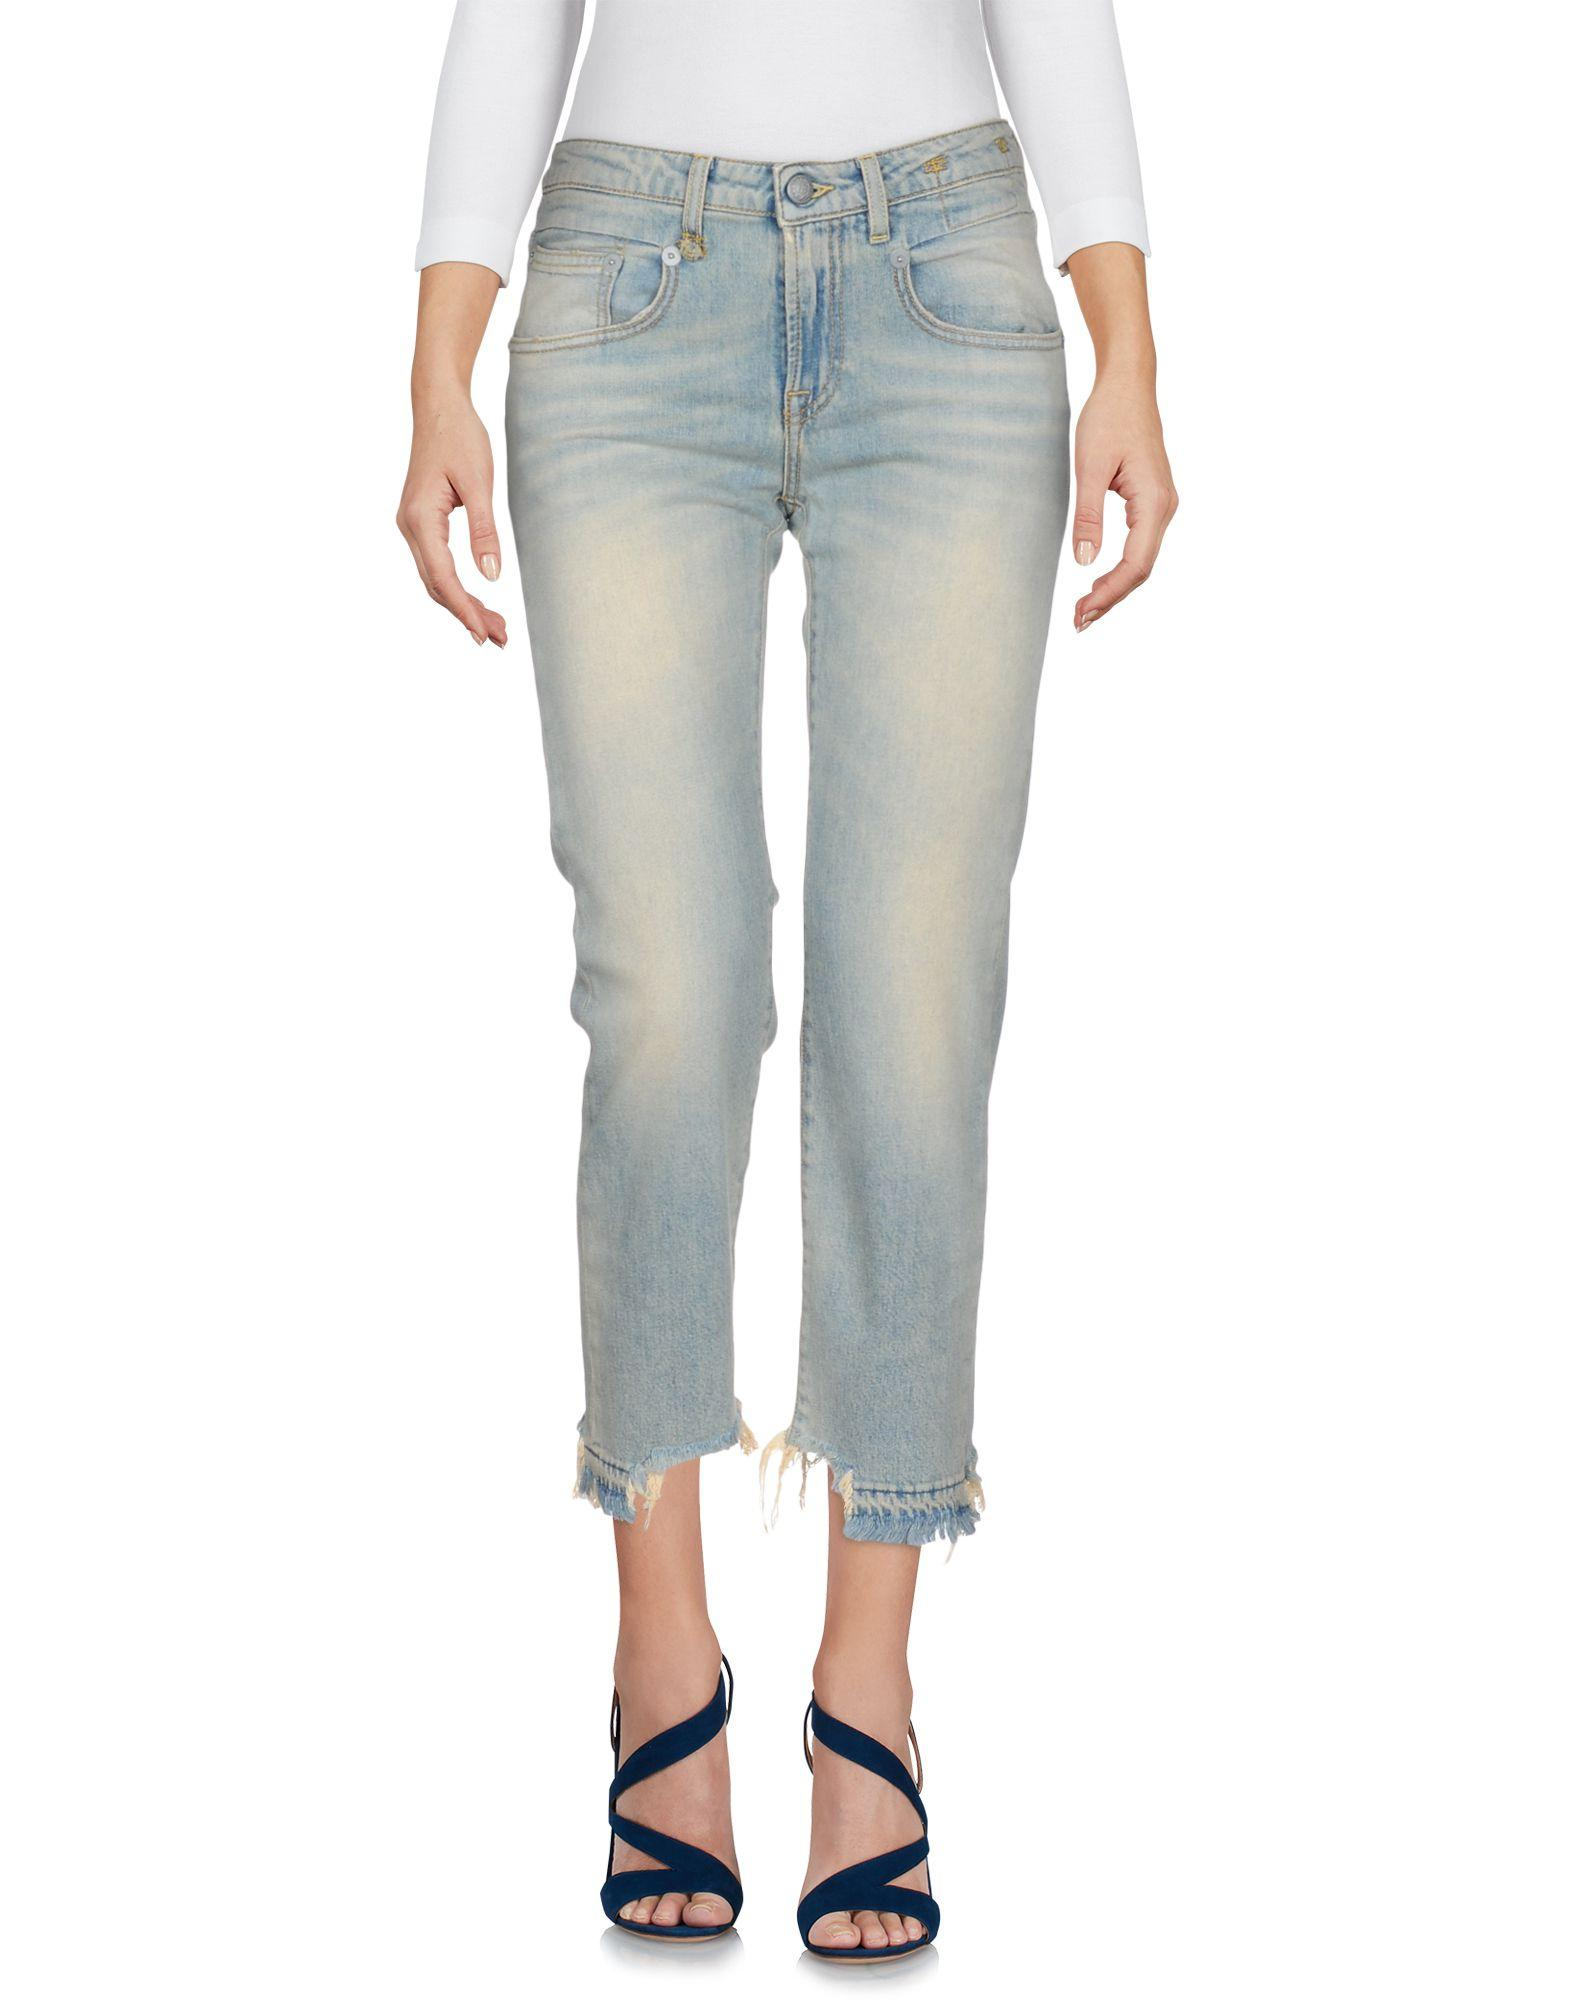 R13 Jeans In Blue